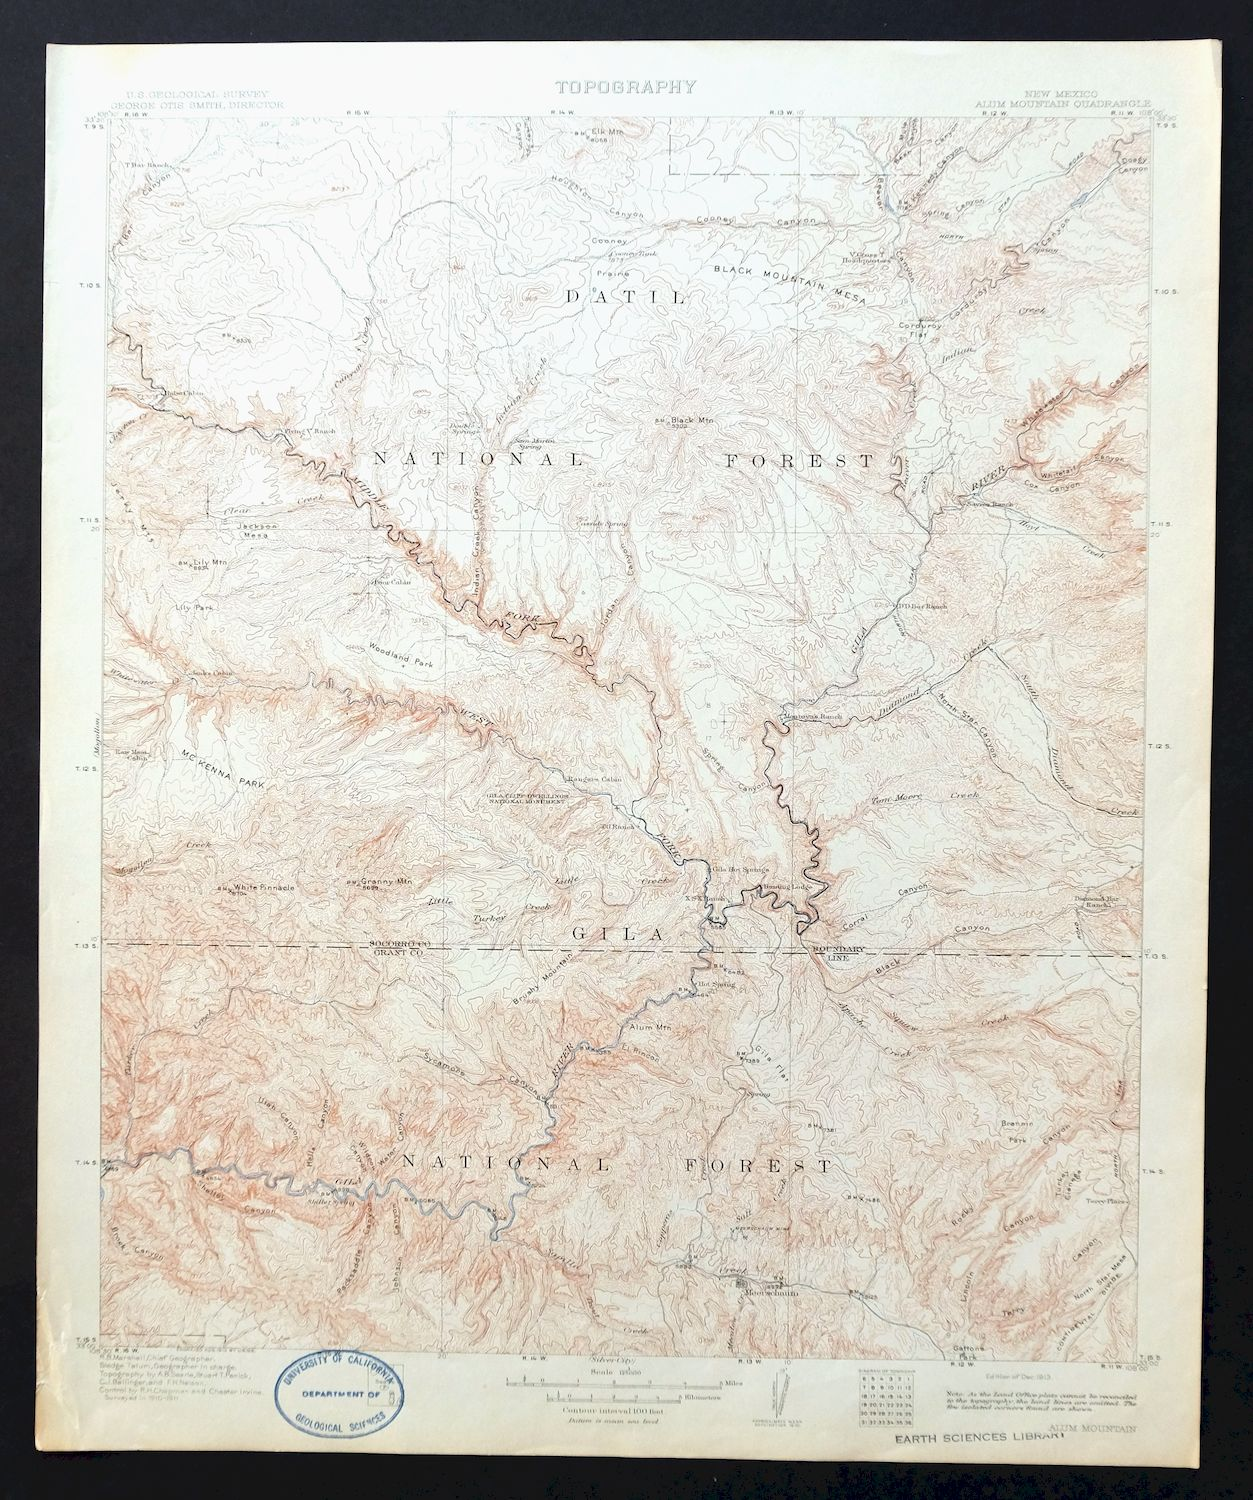 Details about Alum Mountain New Mexico Rare Antique 1913 USGS Topo Map Gila  Hot Springs